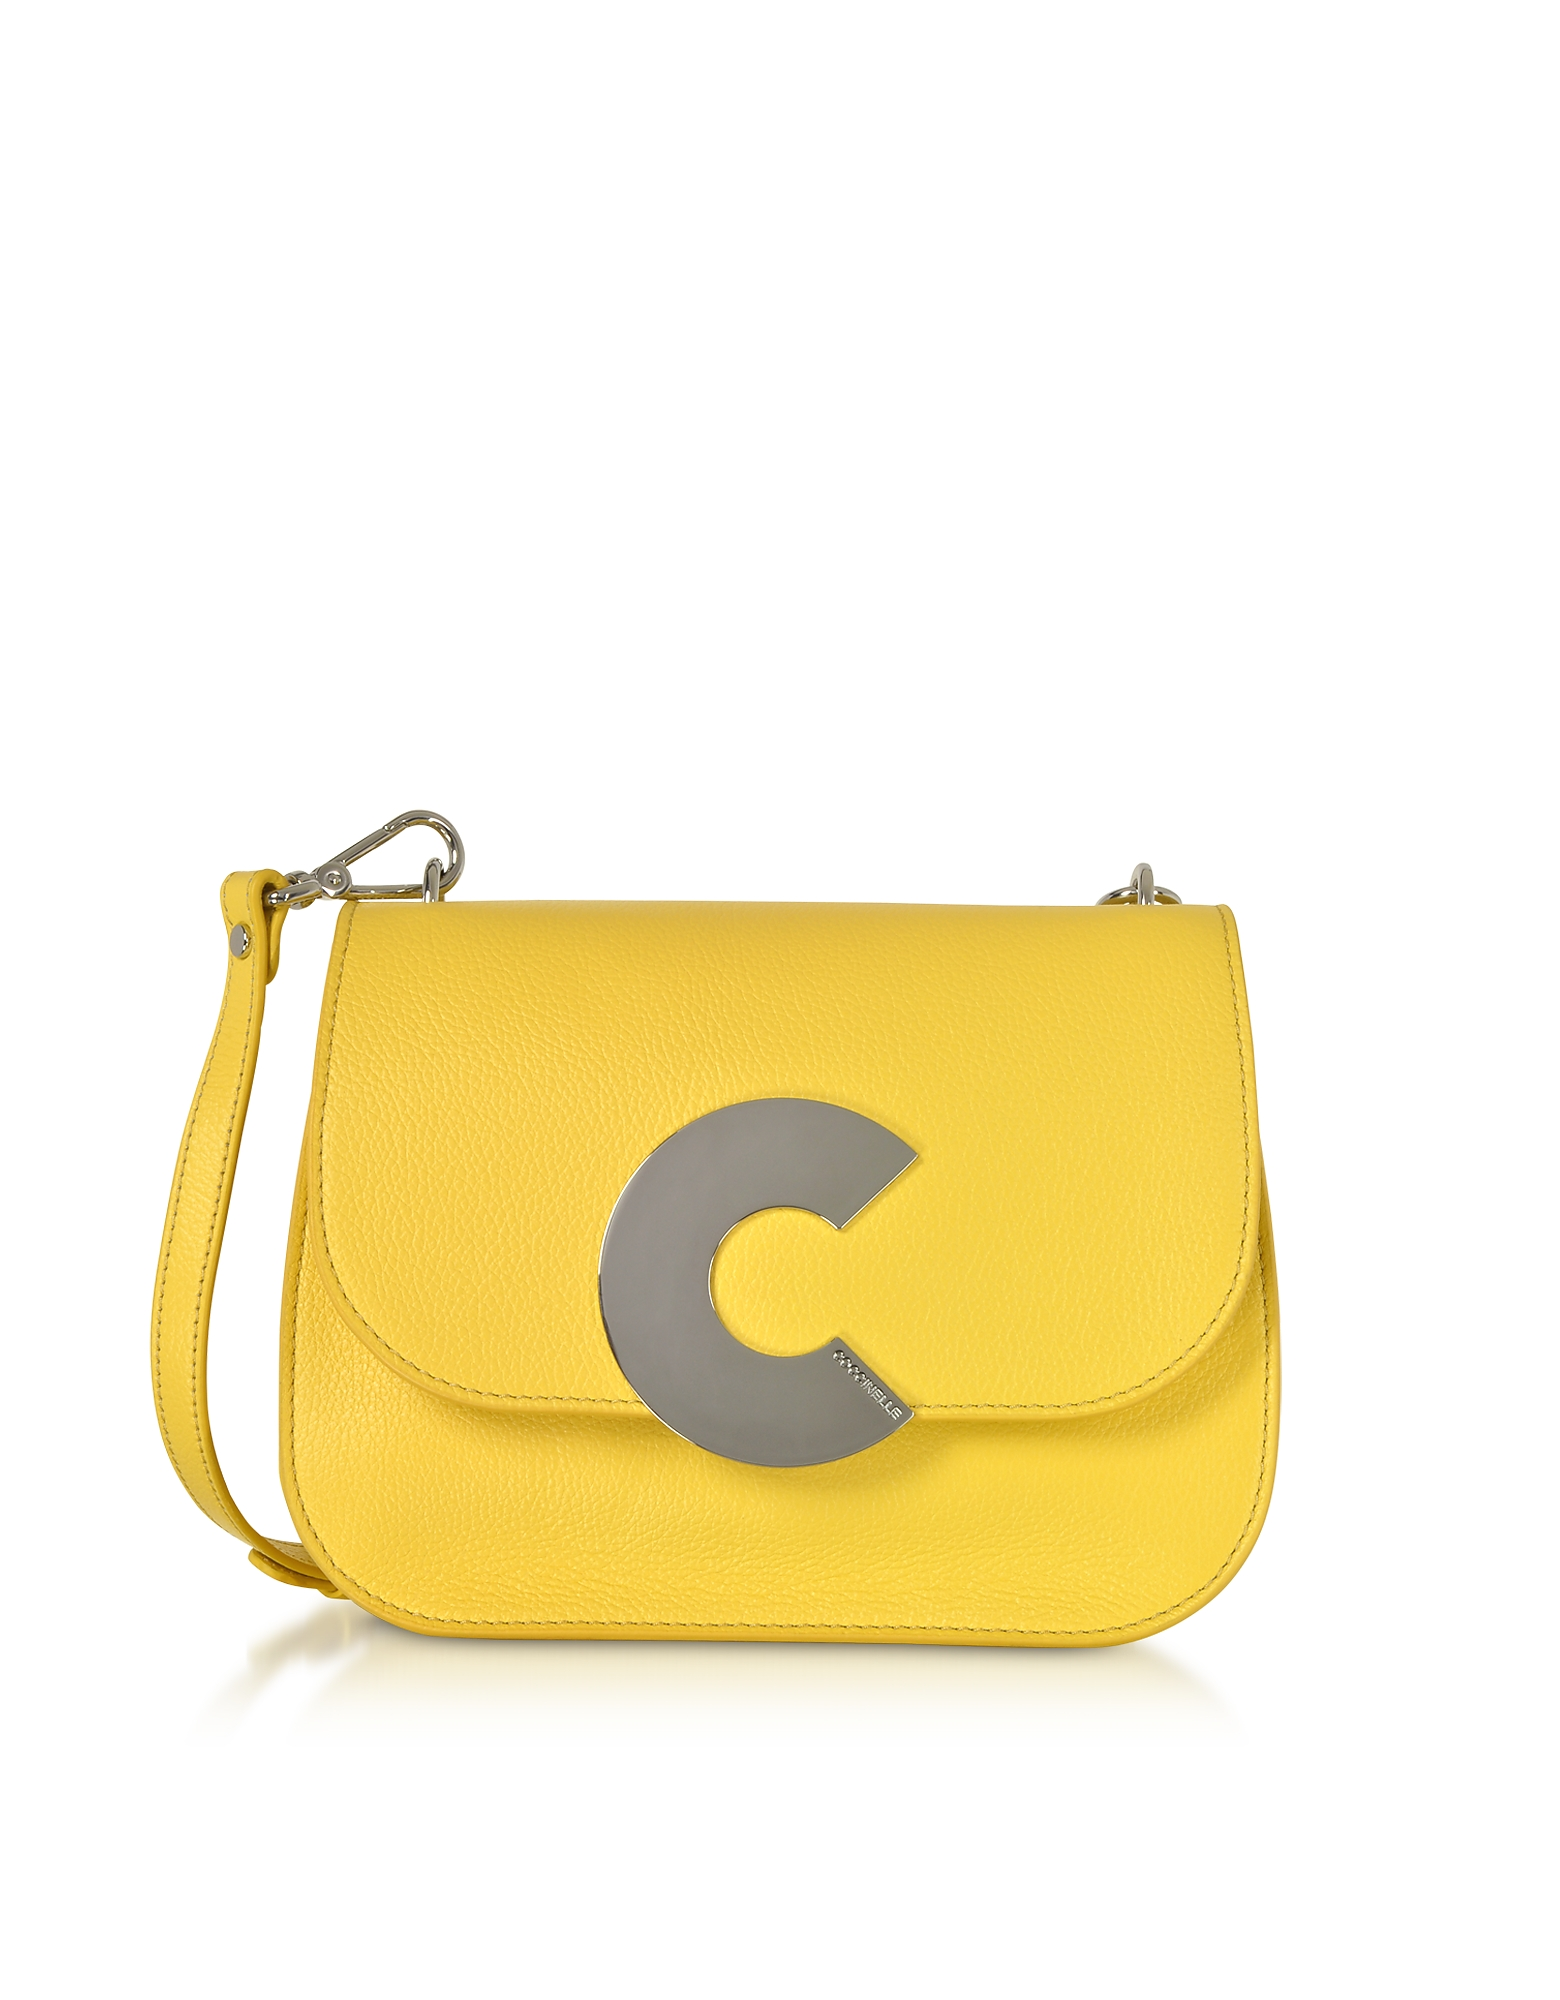 Coccinelle Handbags, Craquante Grained Leather Medium Crossbody Bag